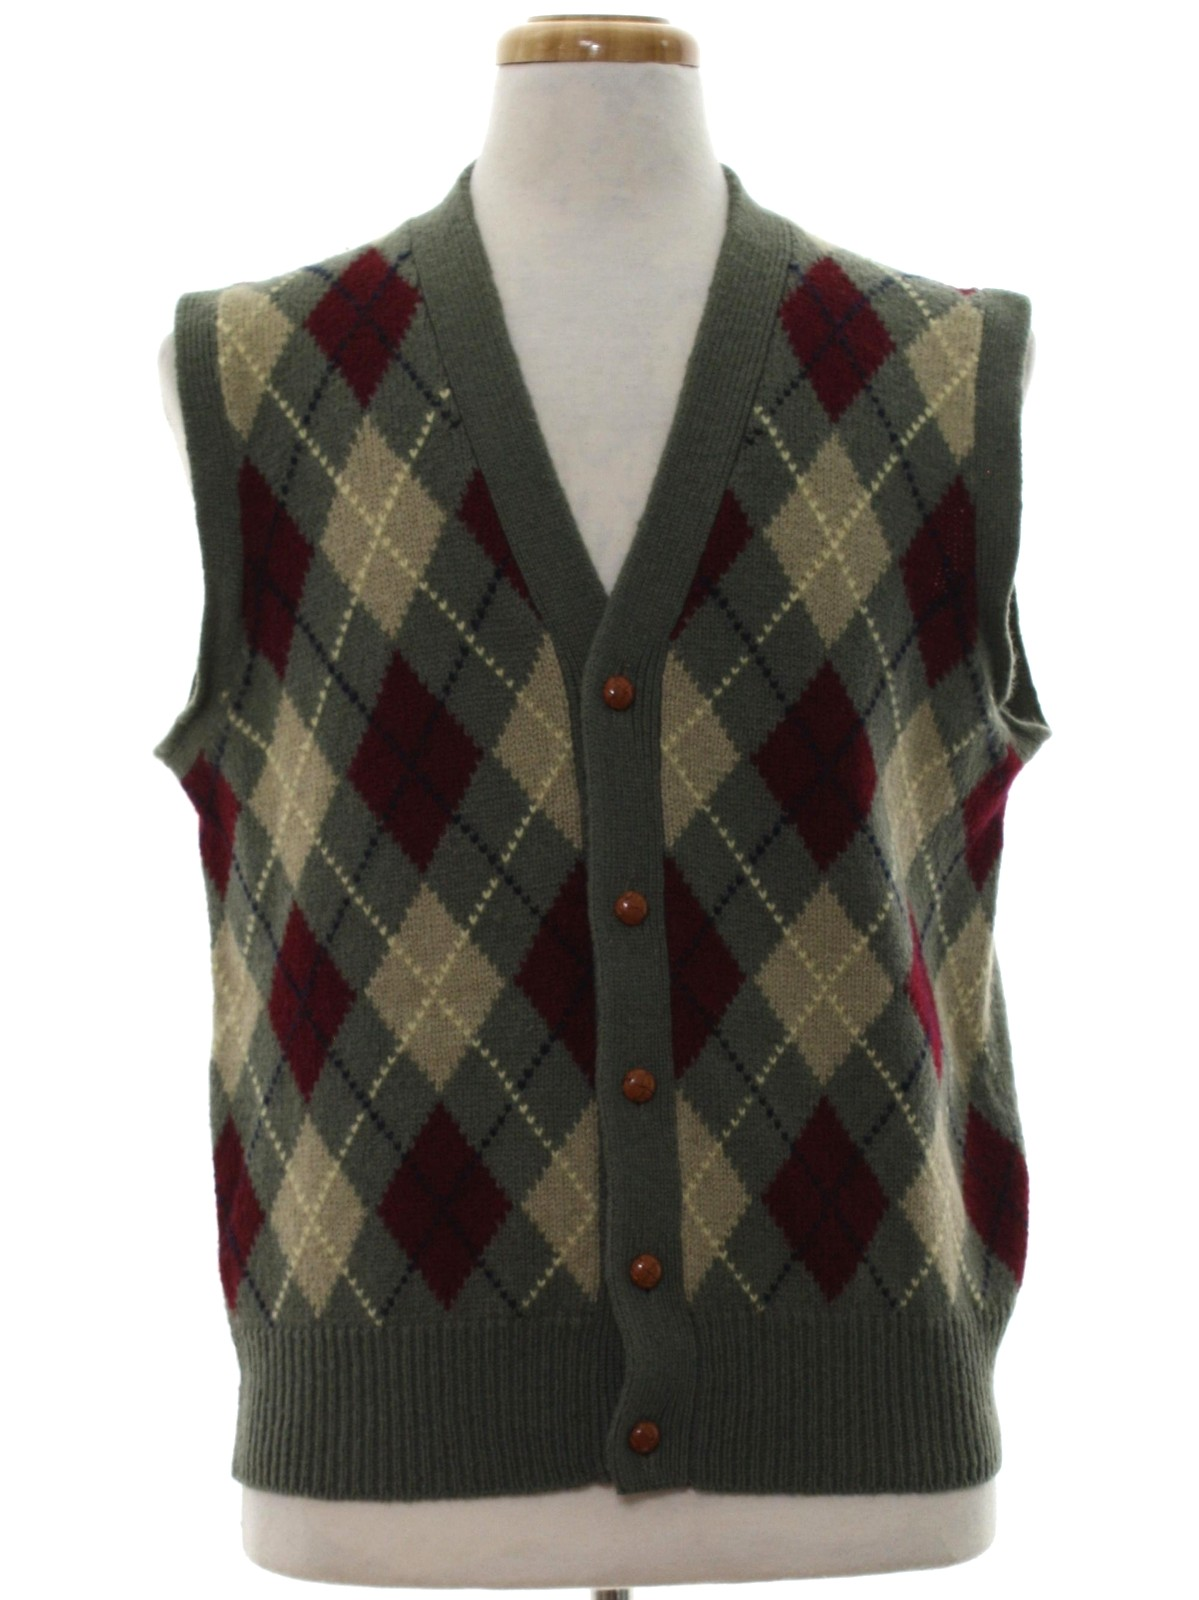 Walmart Boys Sweater Vest